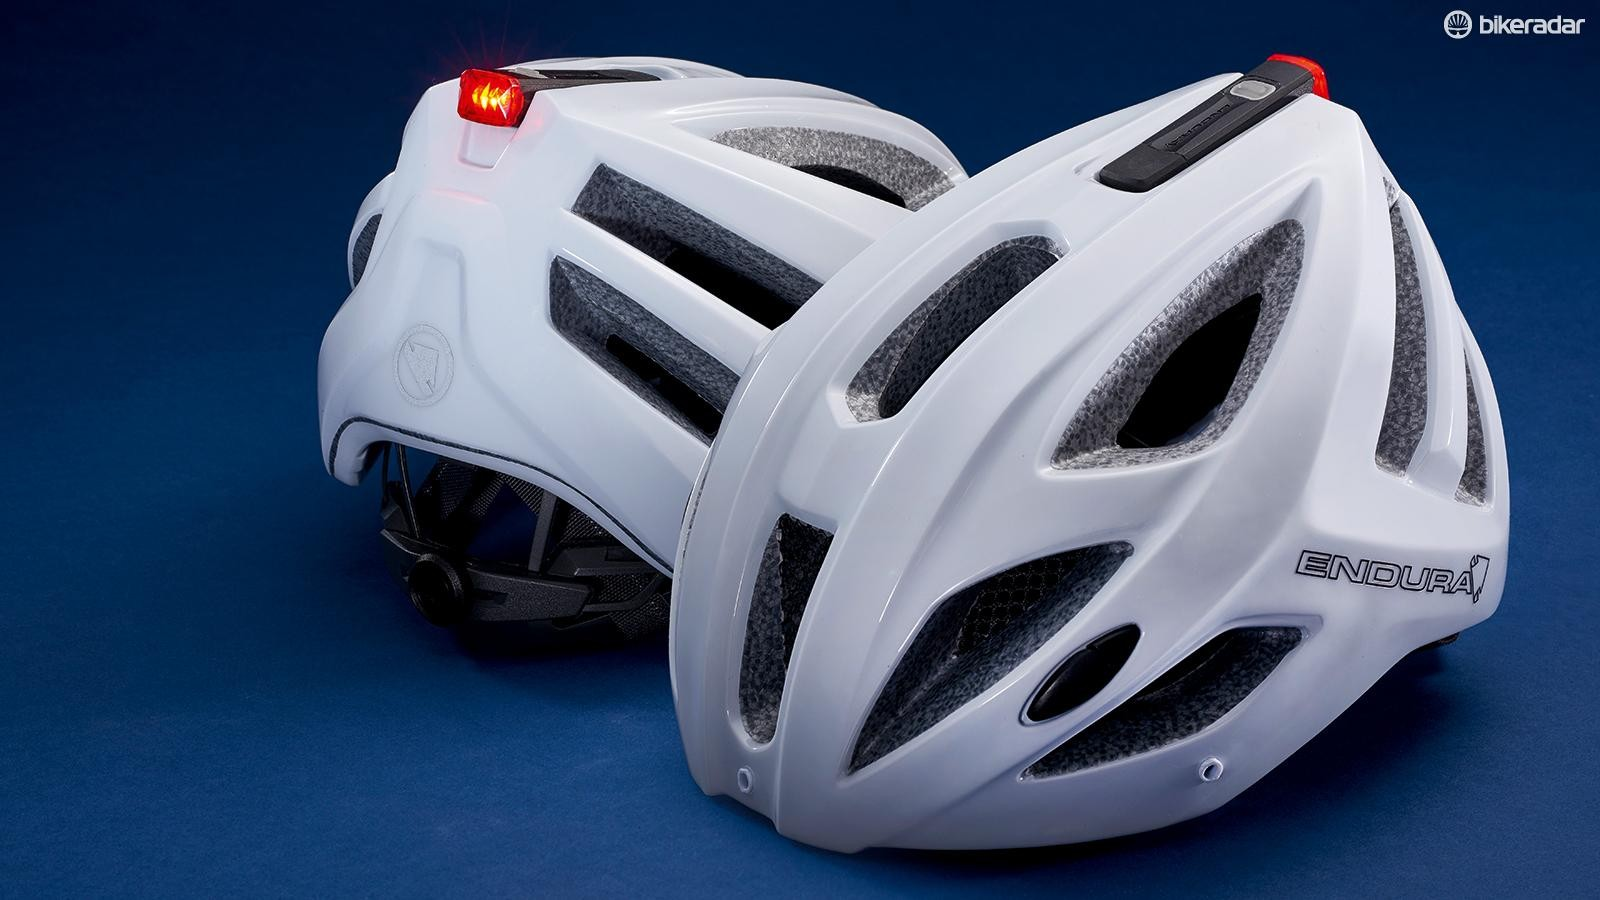 Endura's entry-level lid works well whatever bike you're on